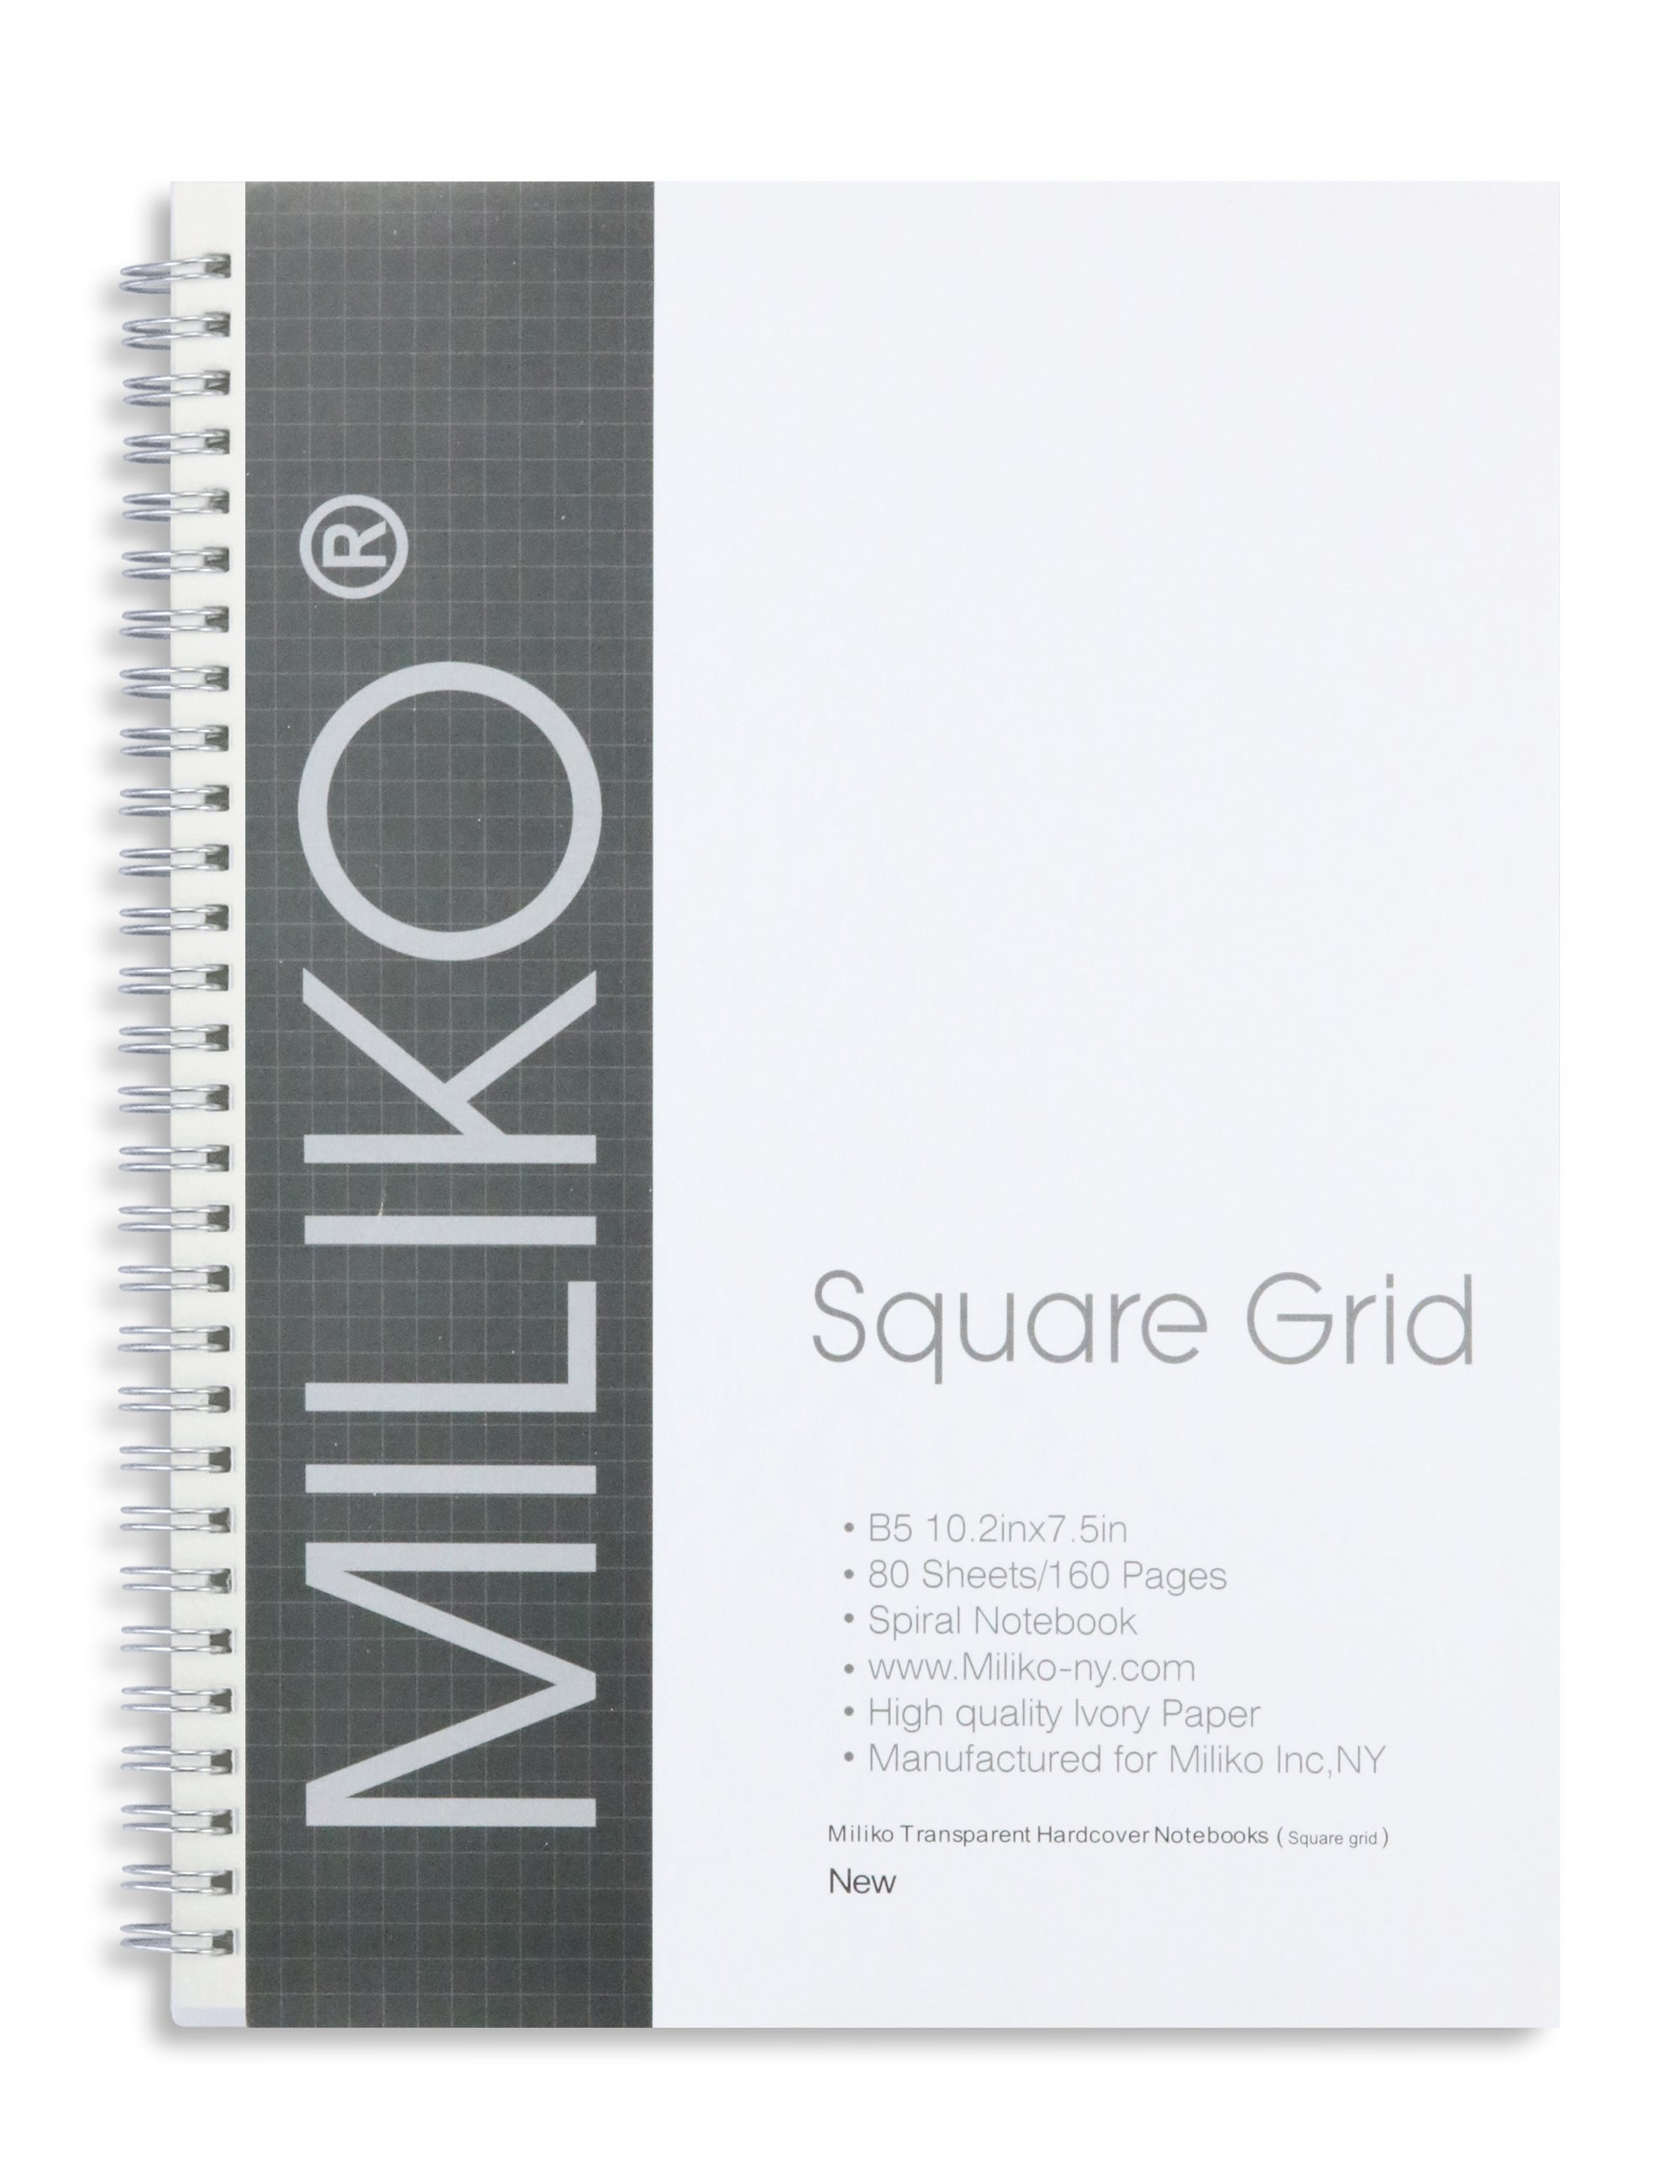 Miliko Transparent Hardcover B5 Square Grid Wirebound Notebook Set